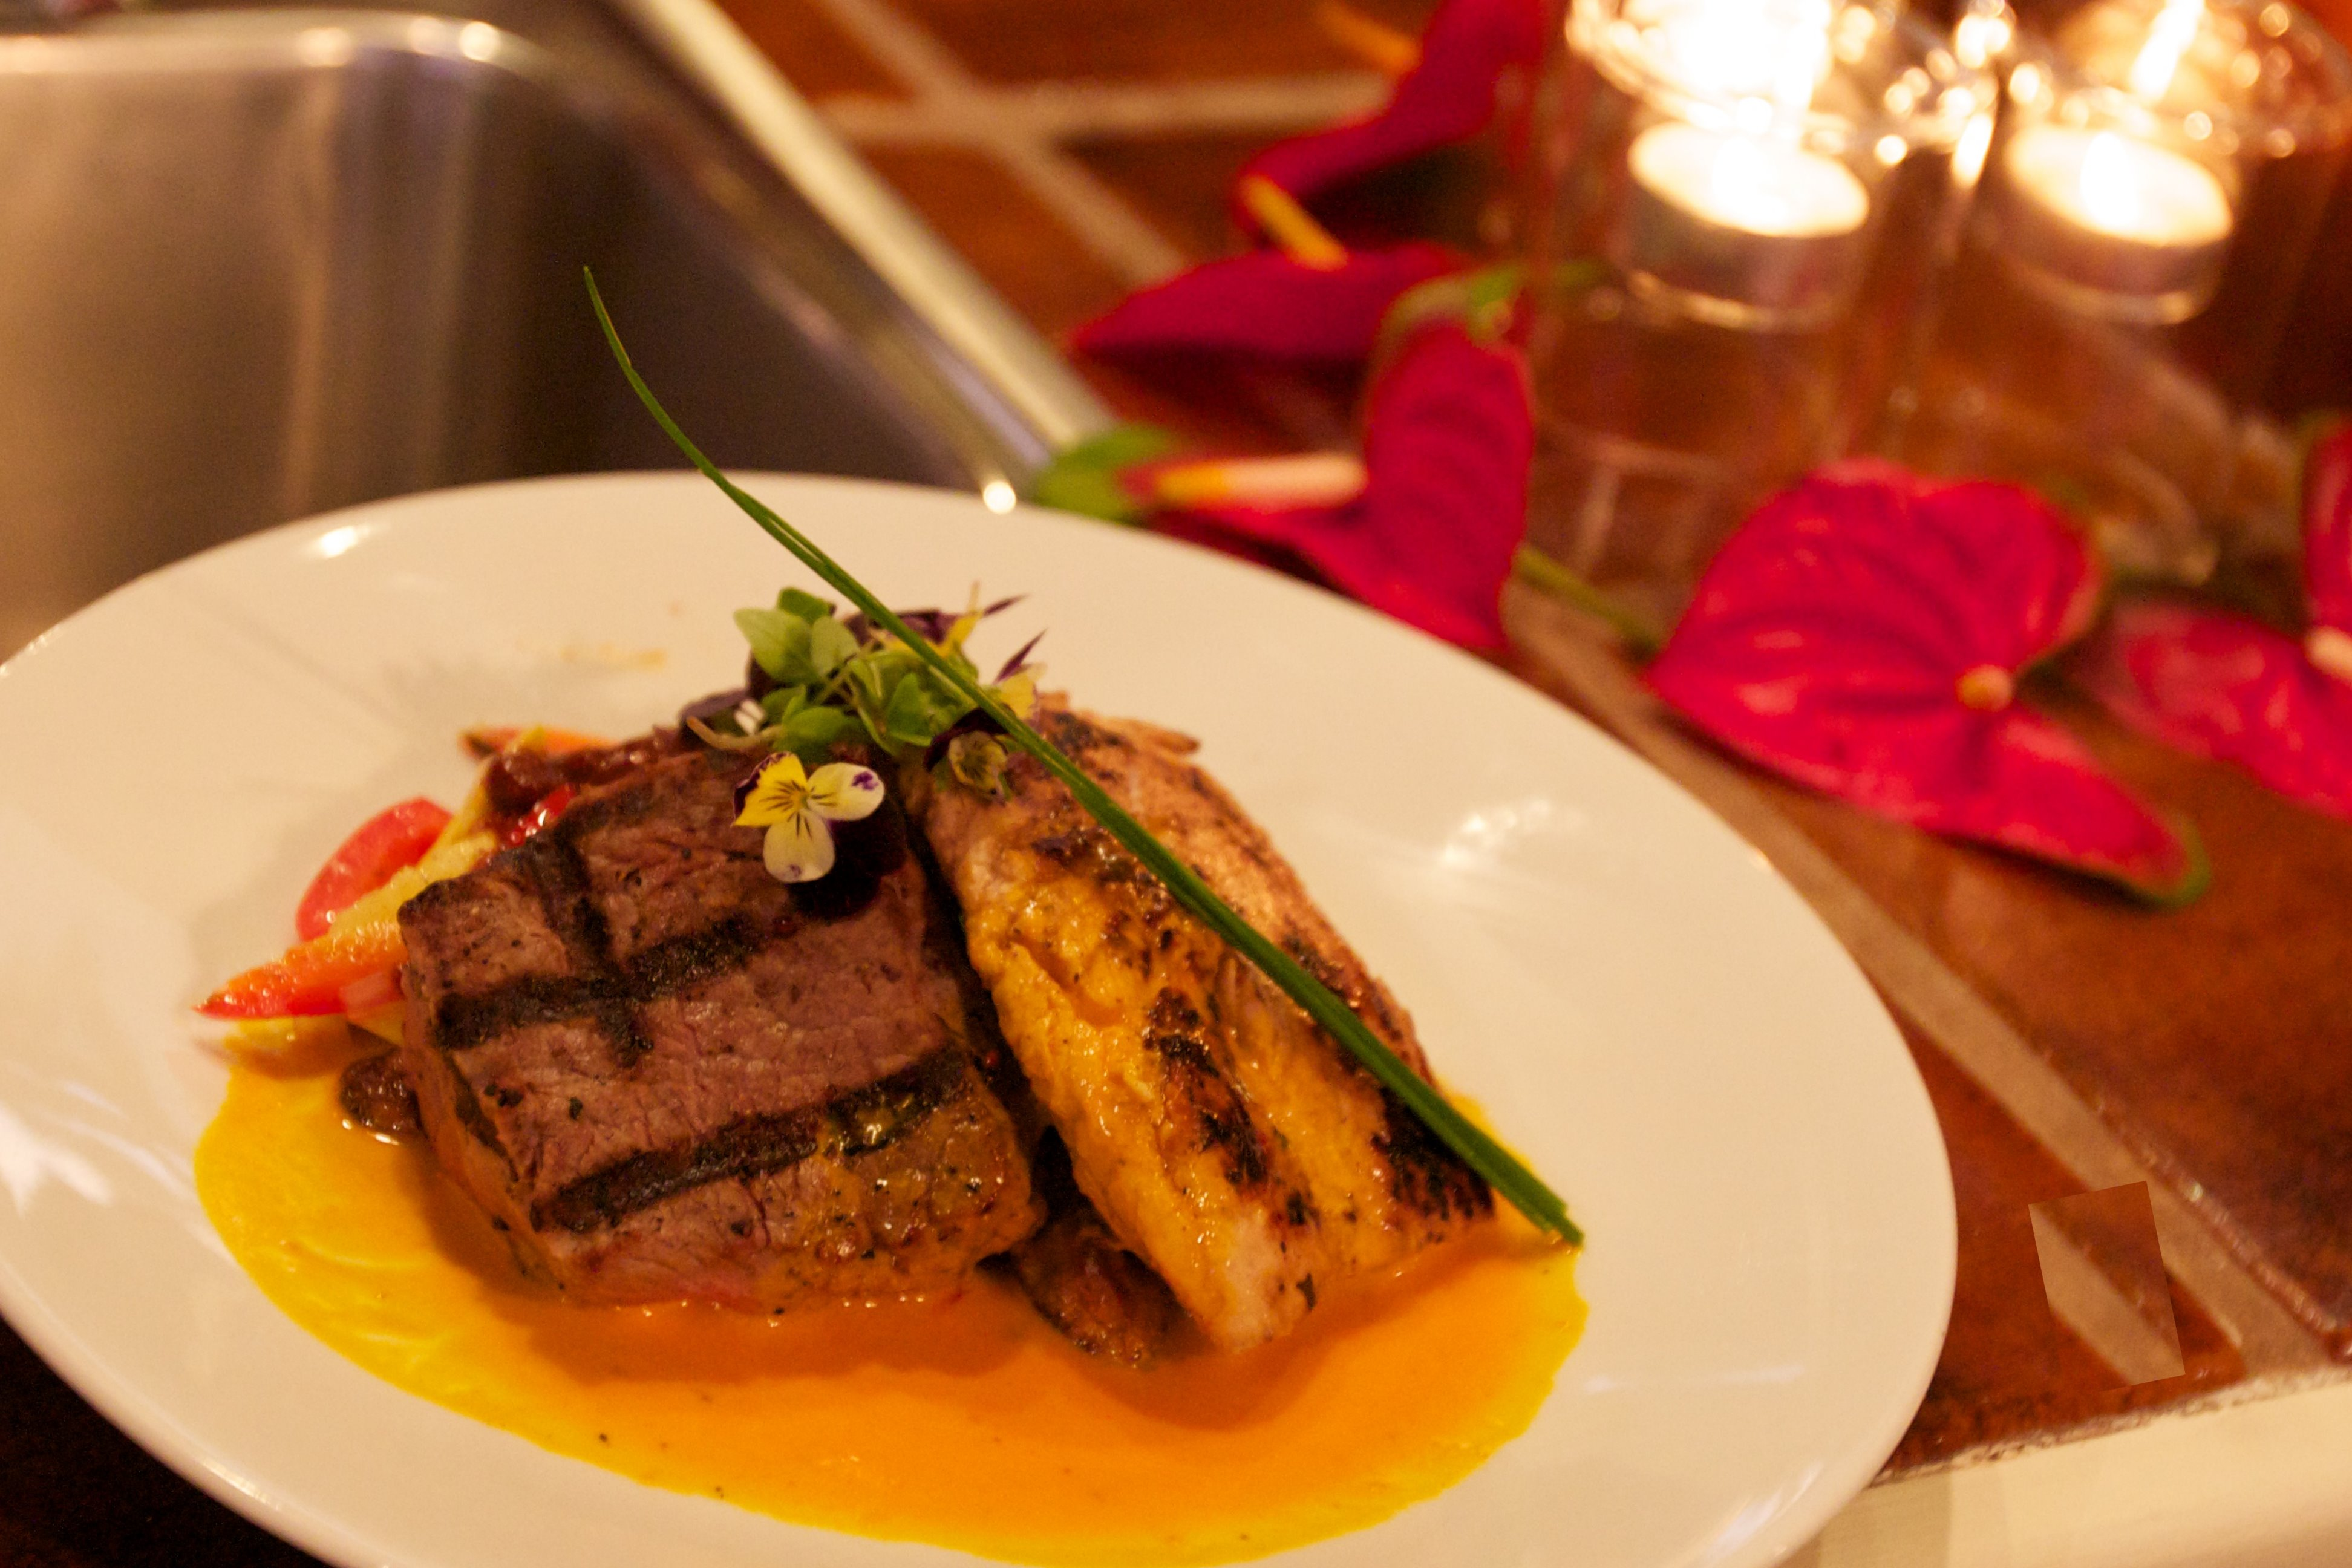 Cuisine id e entr e events and catering in hawaii your for Idee menu entree